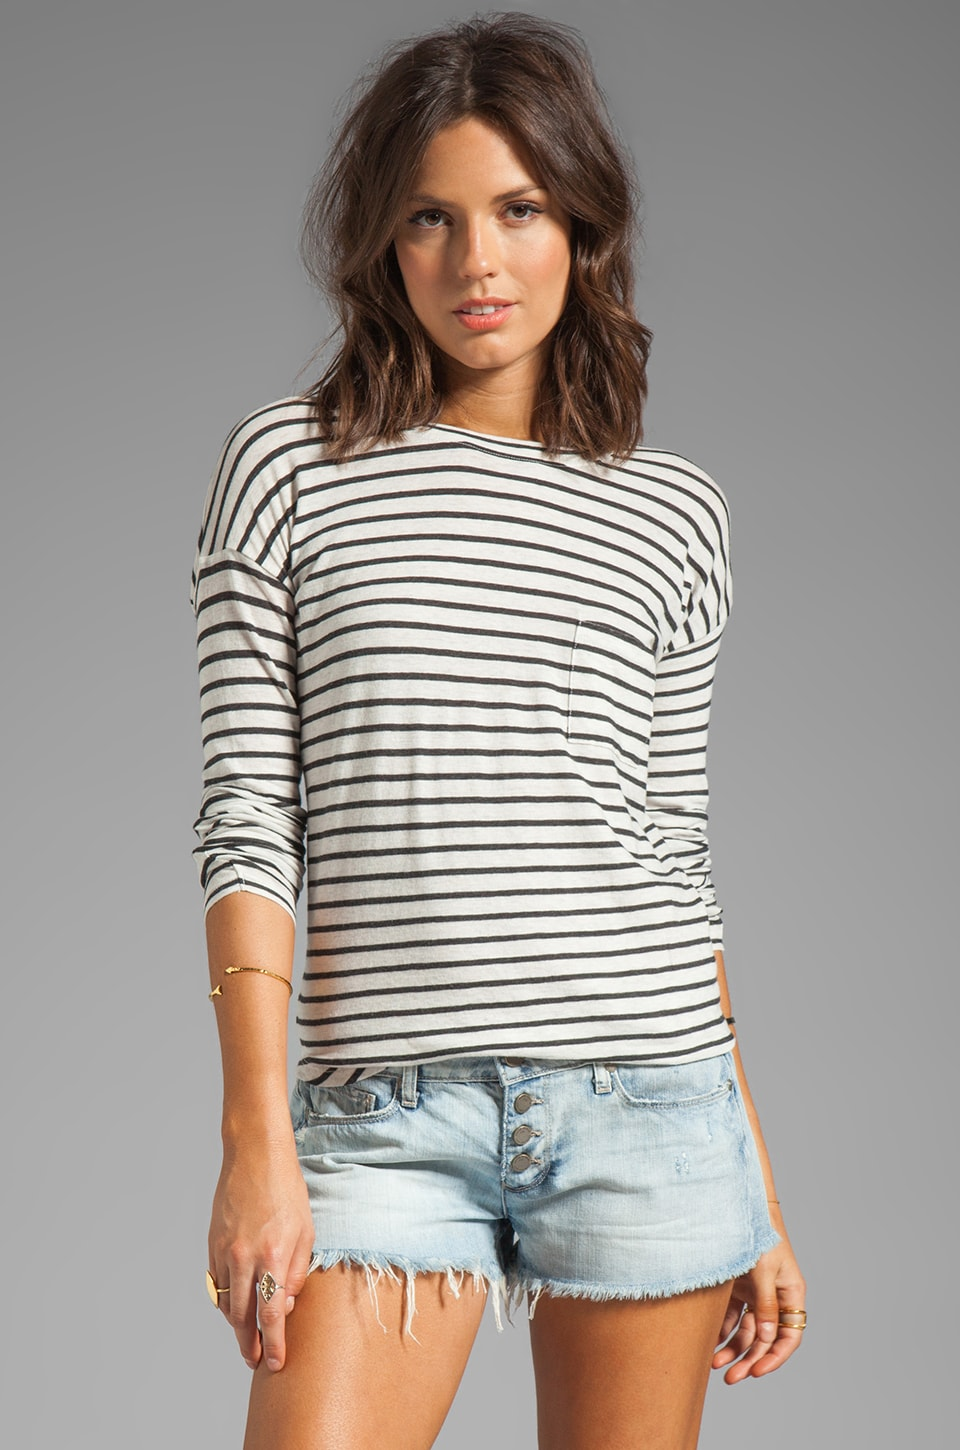 Vince 3/4-Sleeve Striped Tee in Heather Black and White